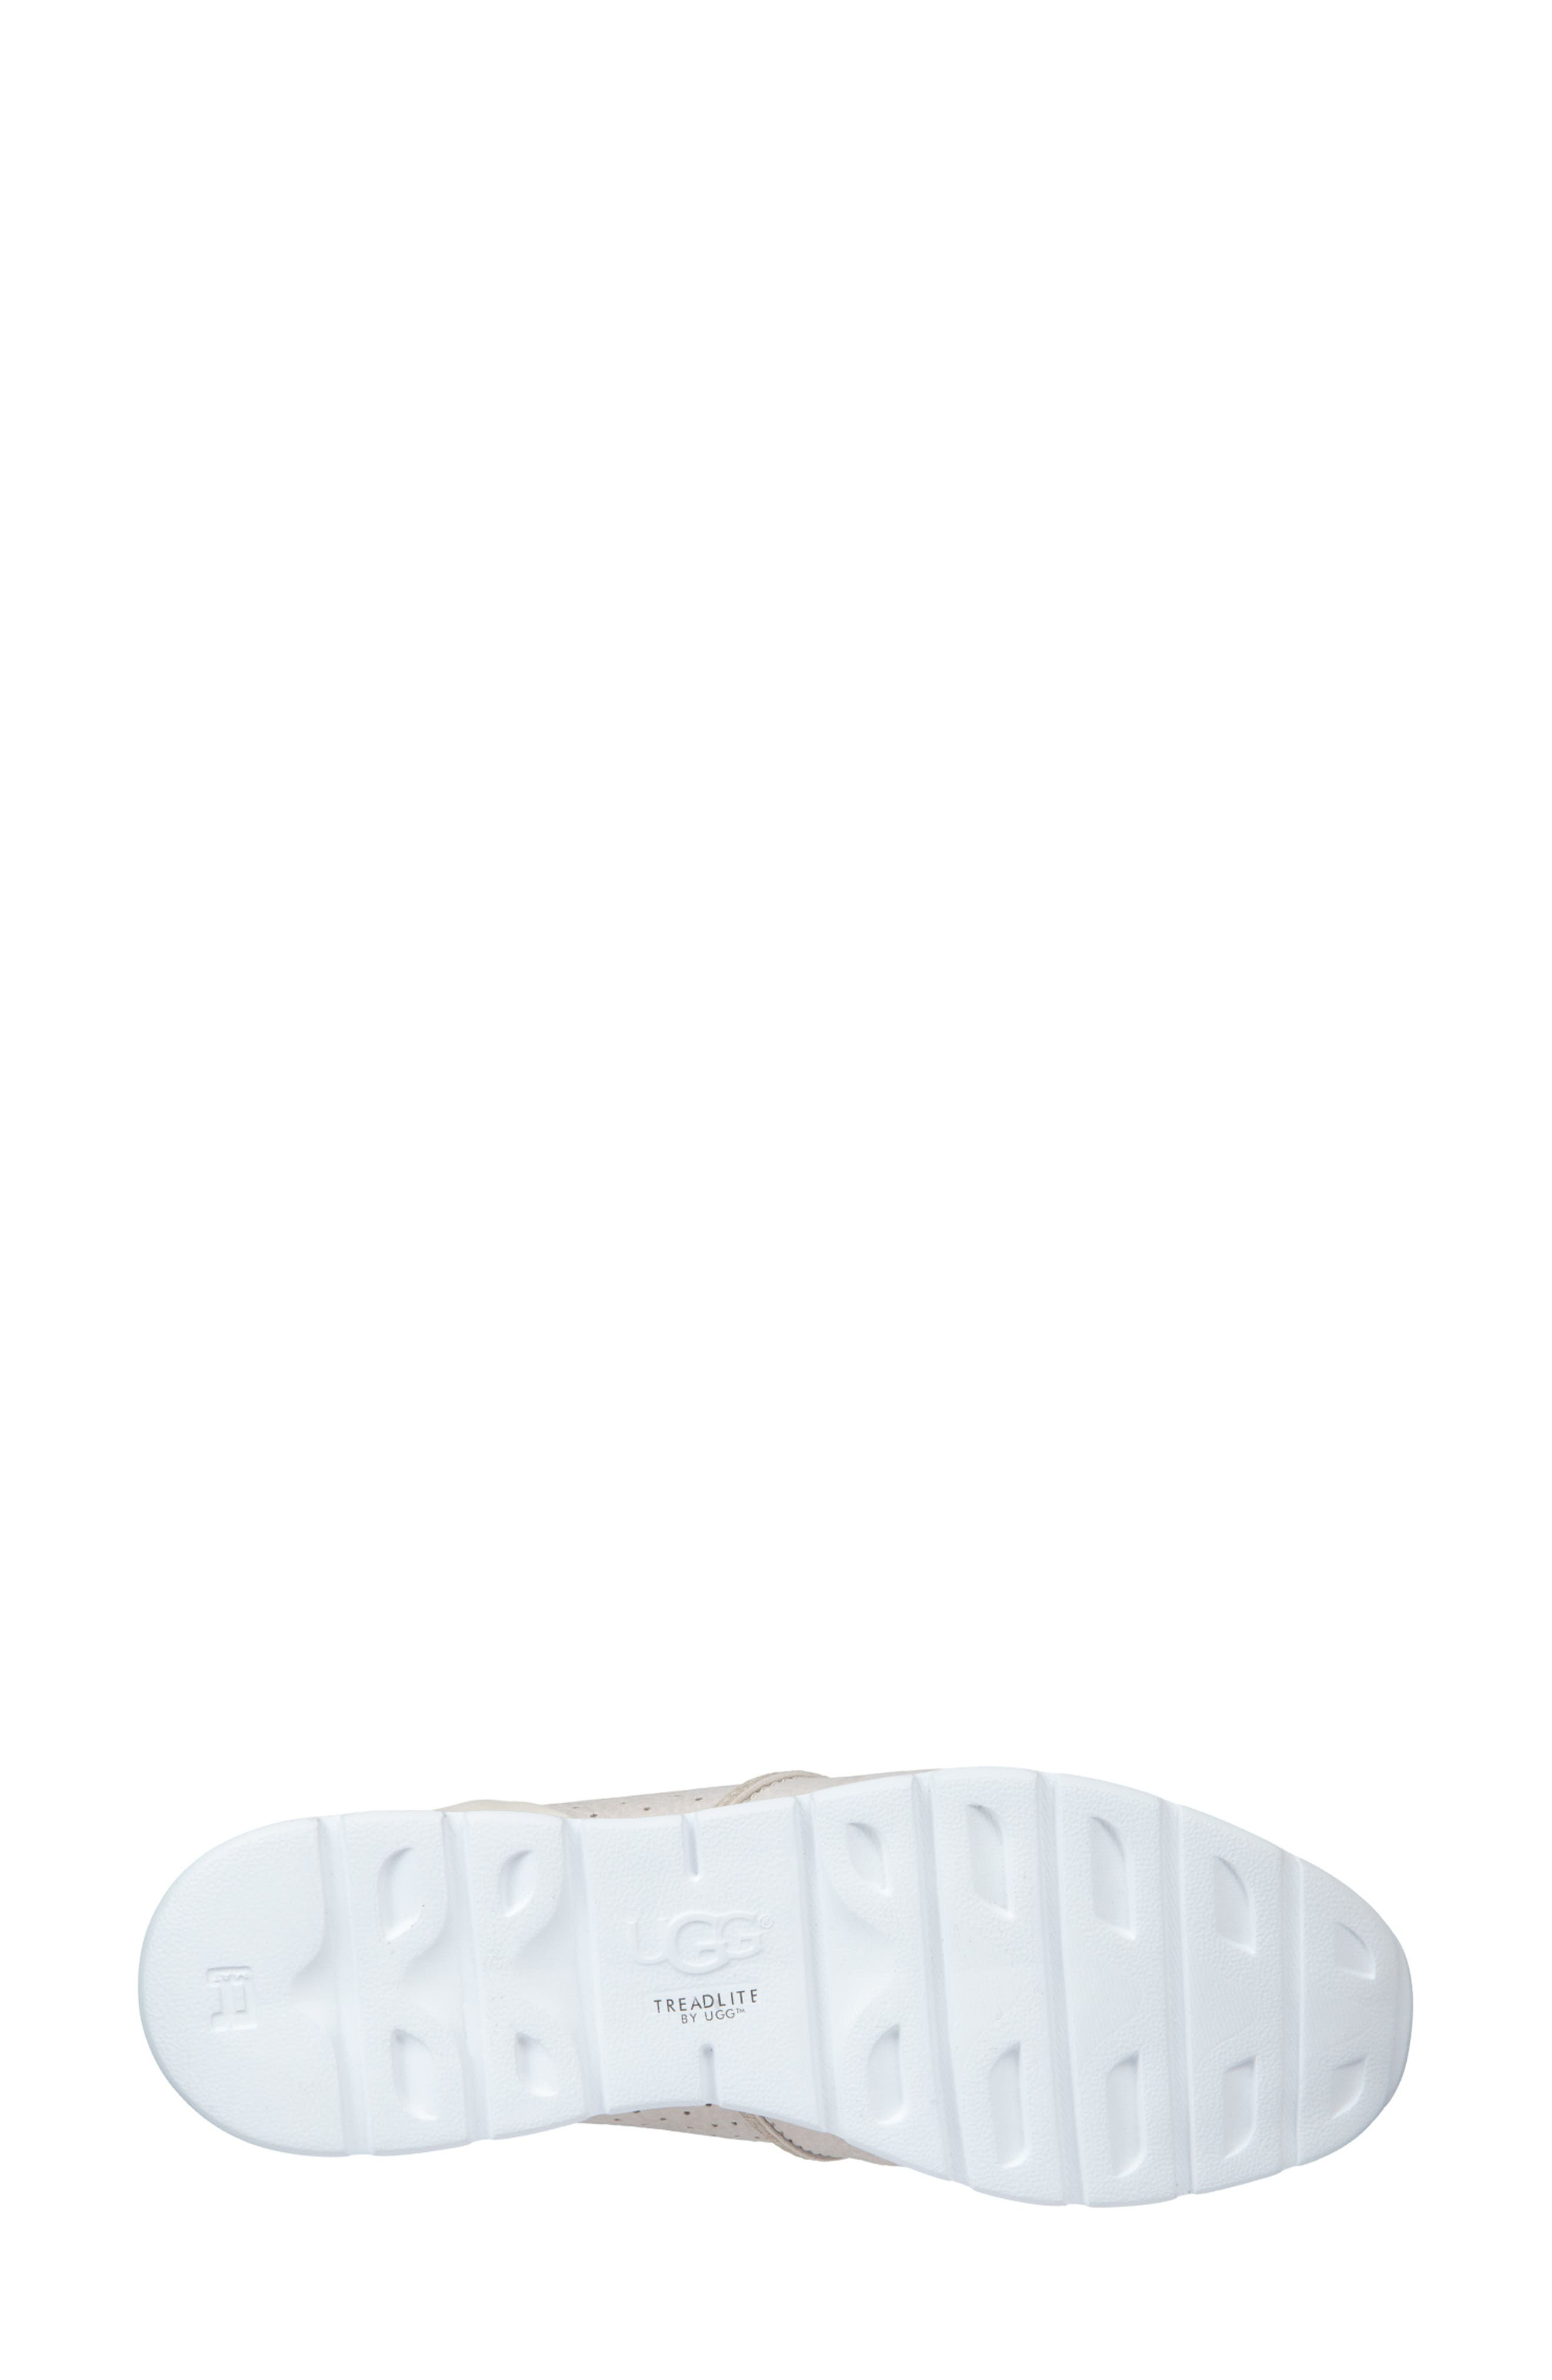 UGG<SUP>®</SUP>, Tye Sneaker, Alternate thumbnail 5, color, COCONUT MILK LEATHER